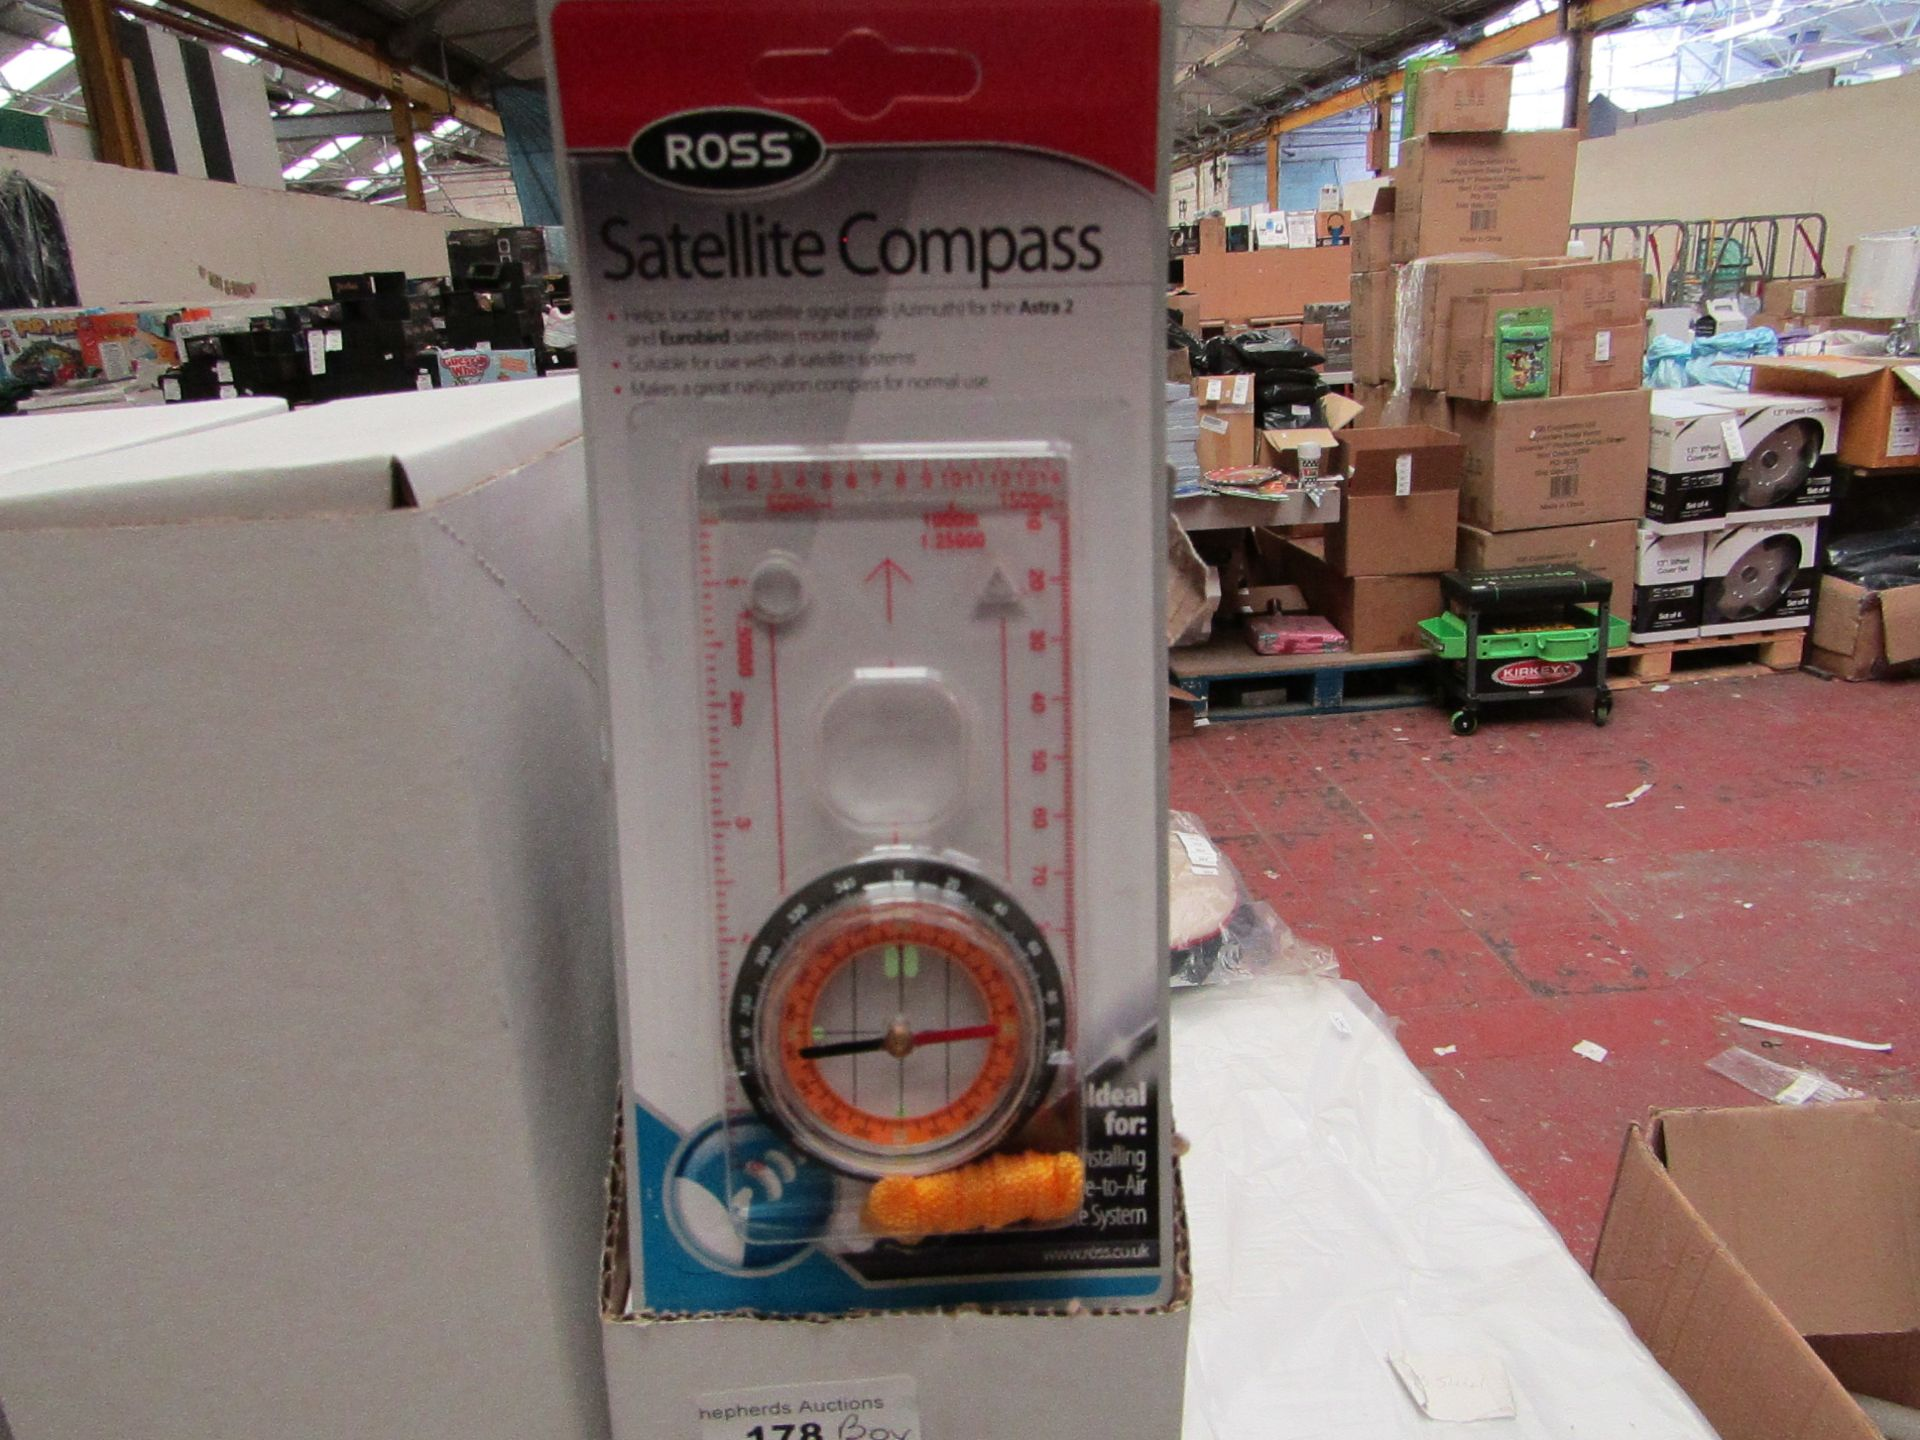 Lot 181 - Box of 10 Ross Satellite Compass'. Unused & Boxed